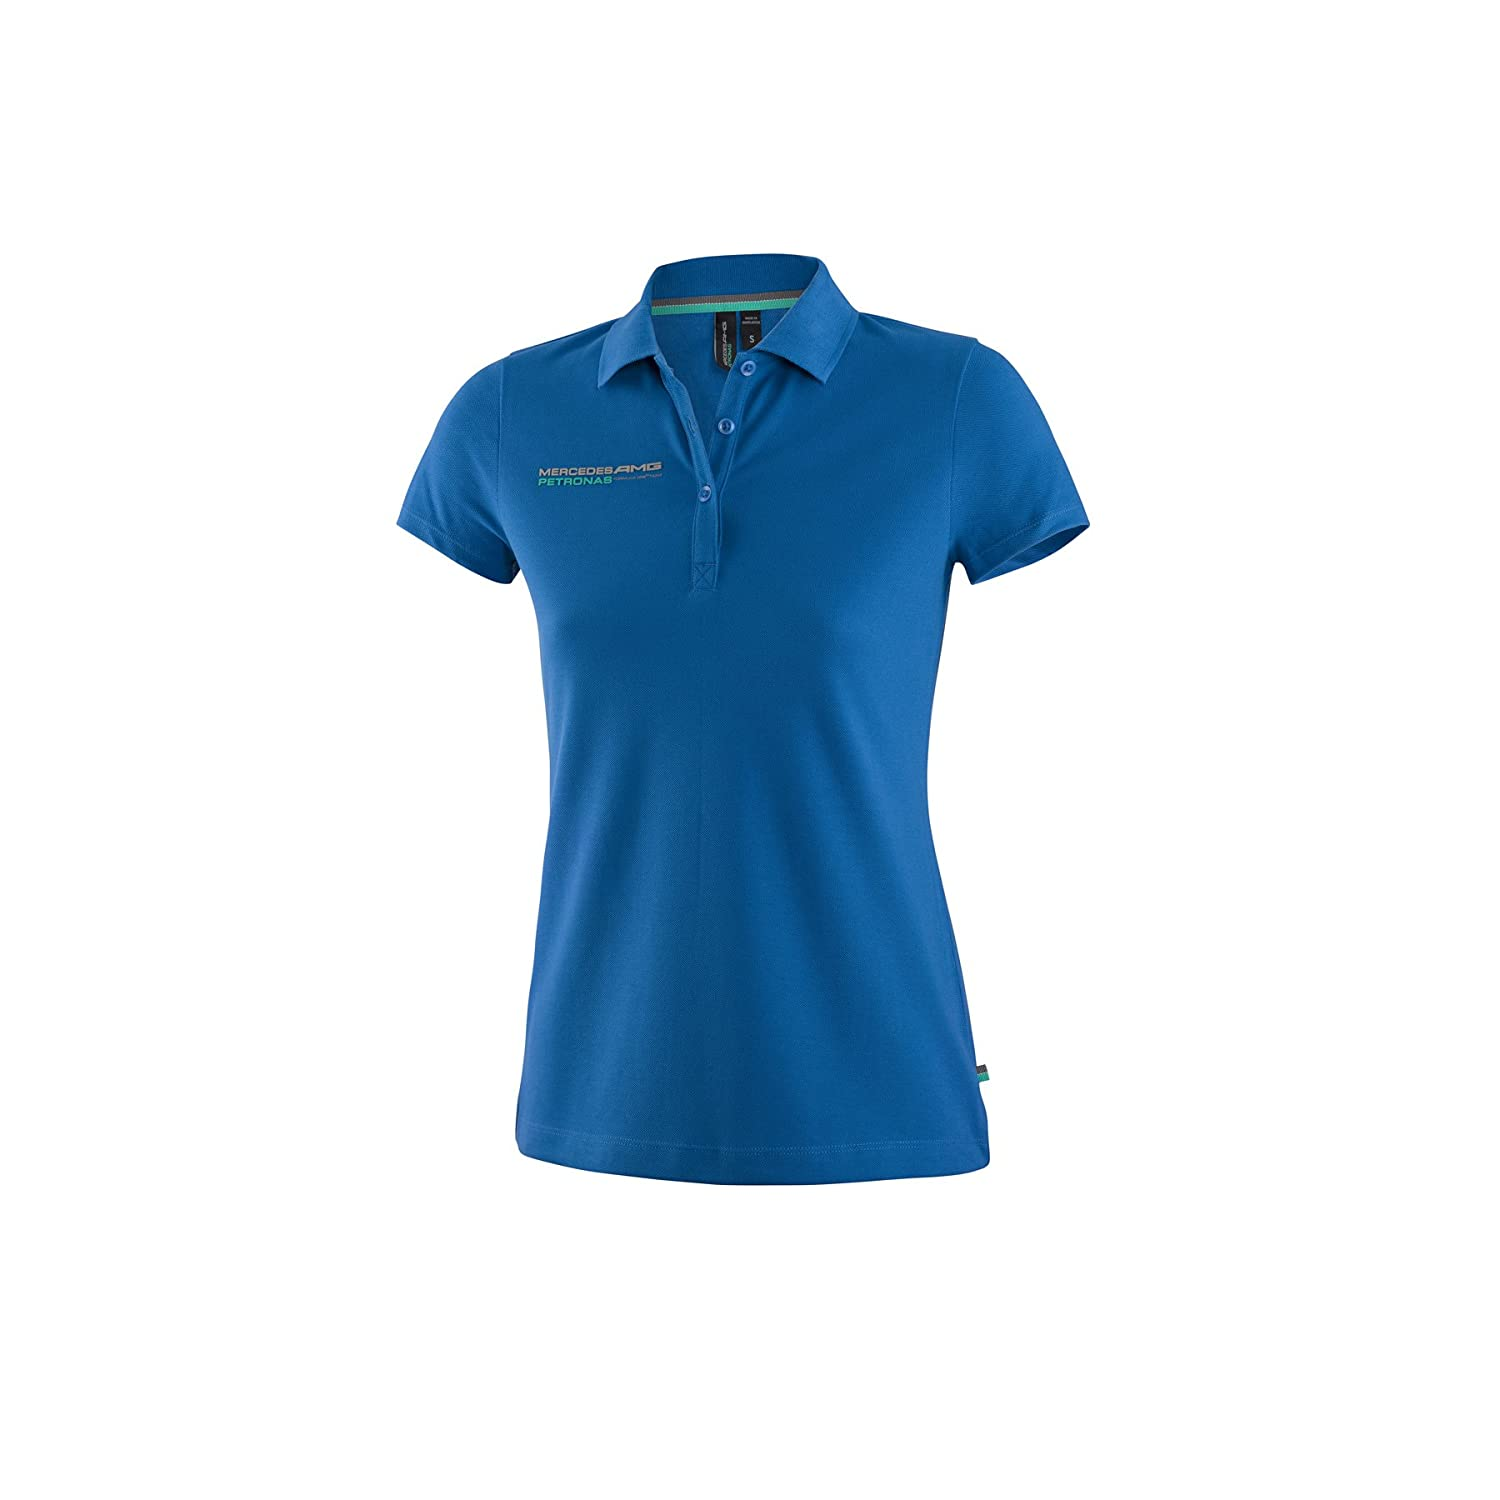 Mercedes AMG Petronas 6000051-500-235 - Camiseta Polo, Color Azul ...